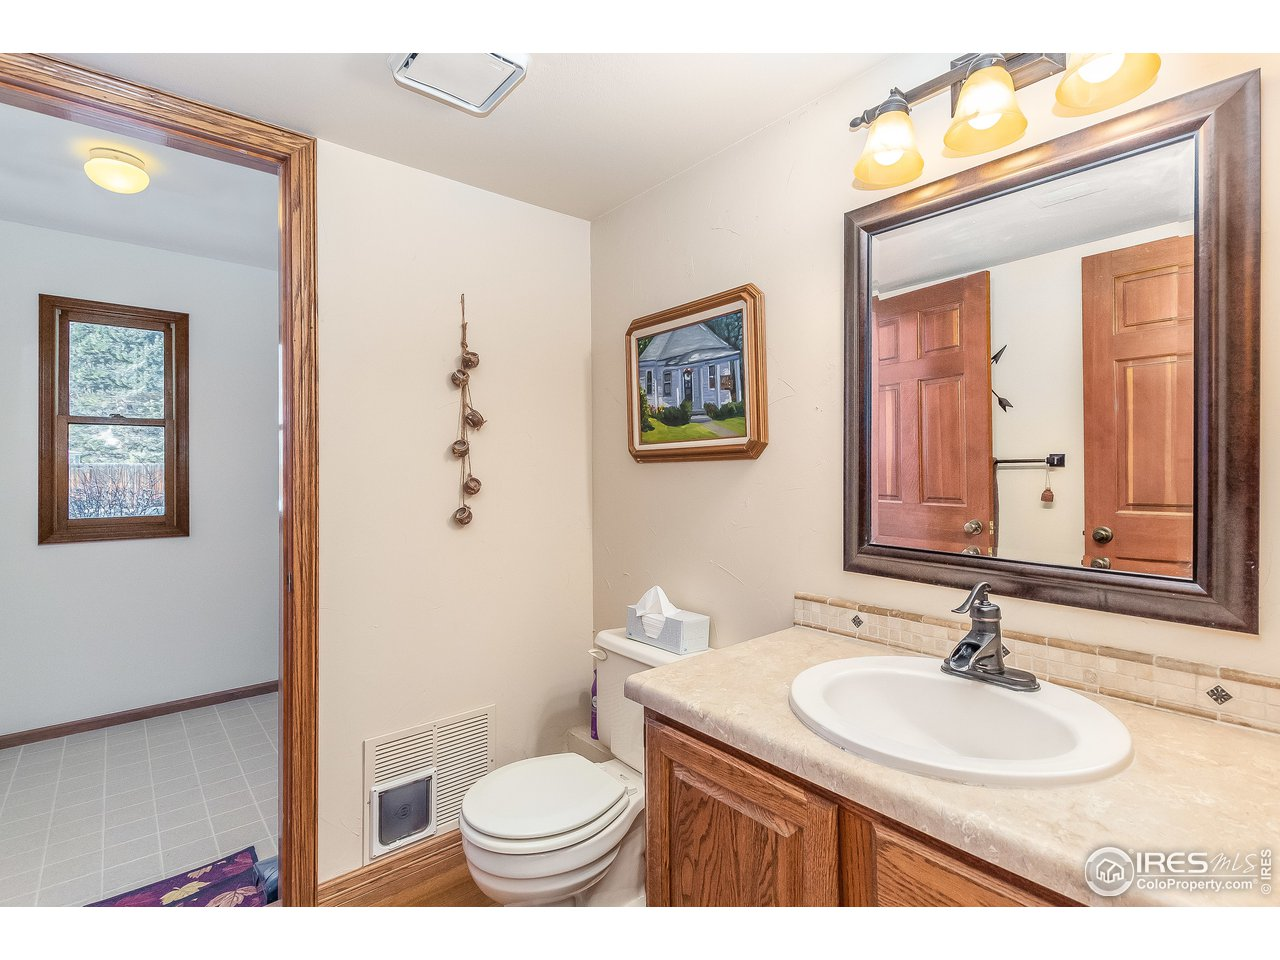 1/2 bath and laundry room complete with sink.